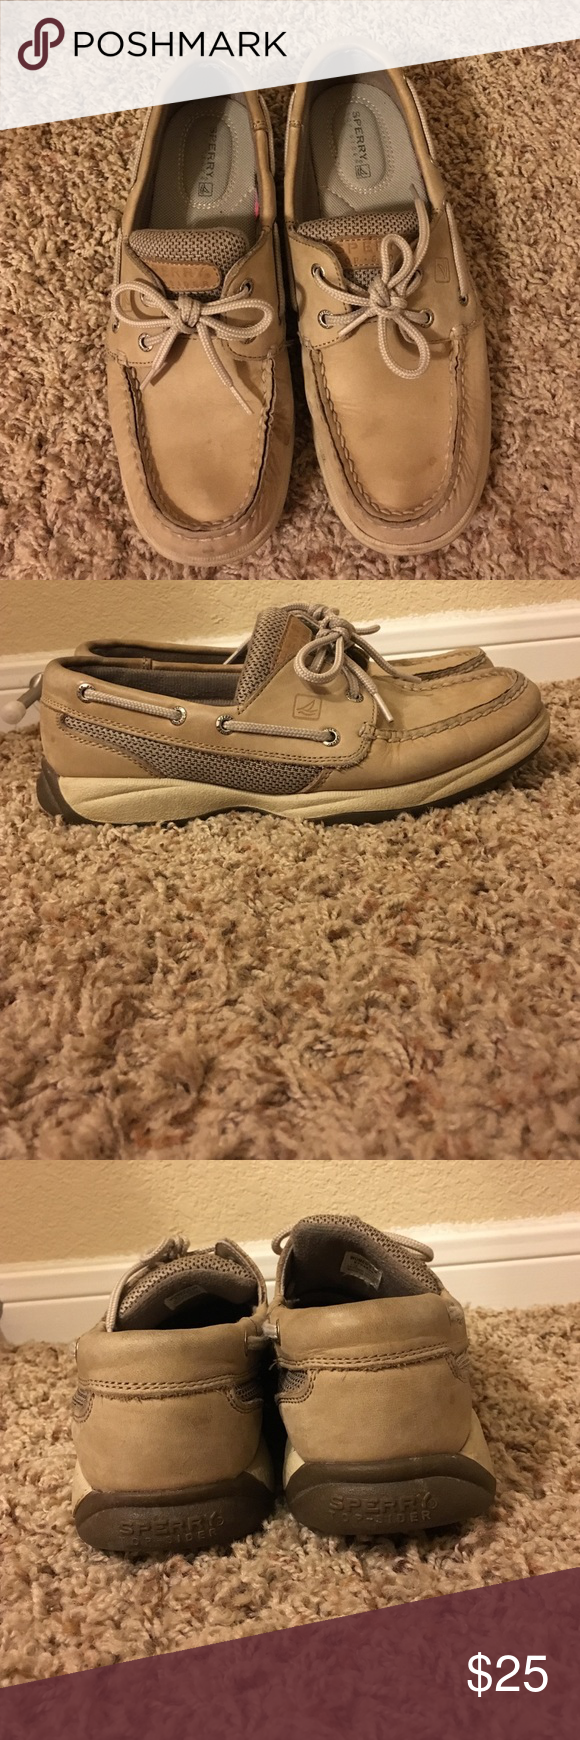 Sperry Top-Sider Sperry Top-Sider Sperry Top-Sider Shoes Sneakers